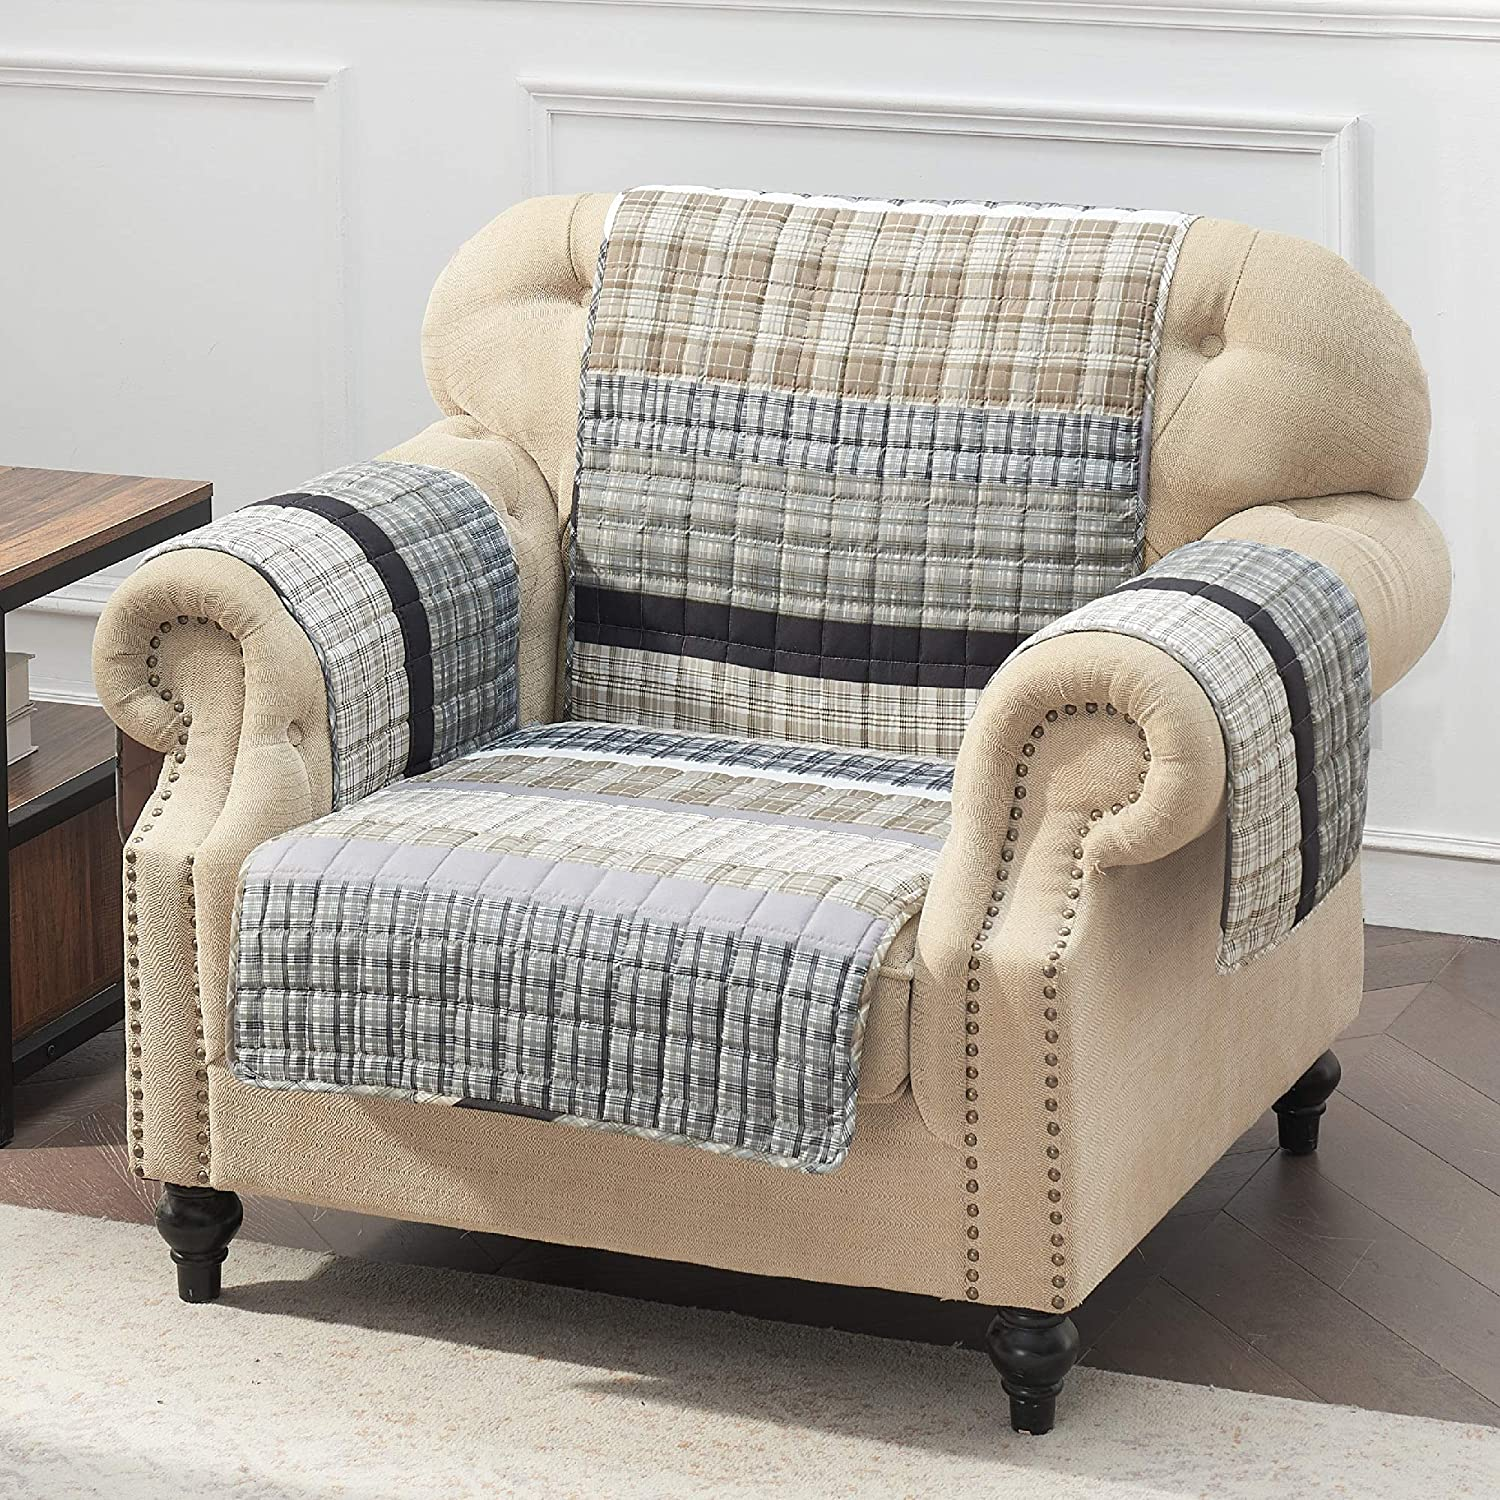 Barefoot Bungalow Gold Rush Slipcover, Arm Chair, Gray